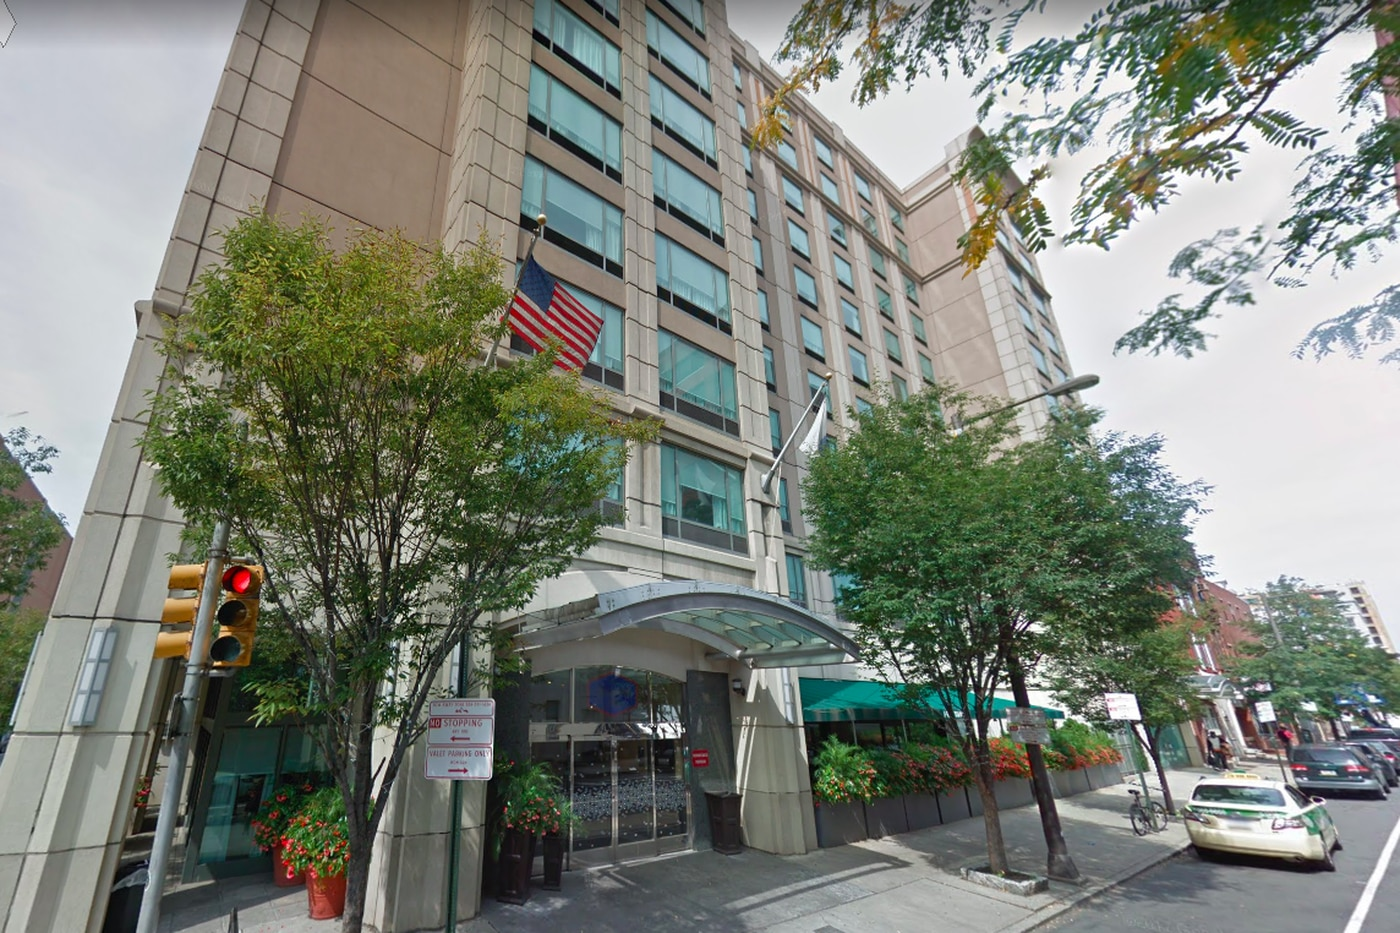 It's Philly's second break room stabbing in three days, this one at Hampton Inn